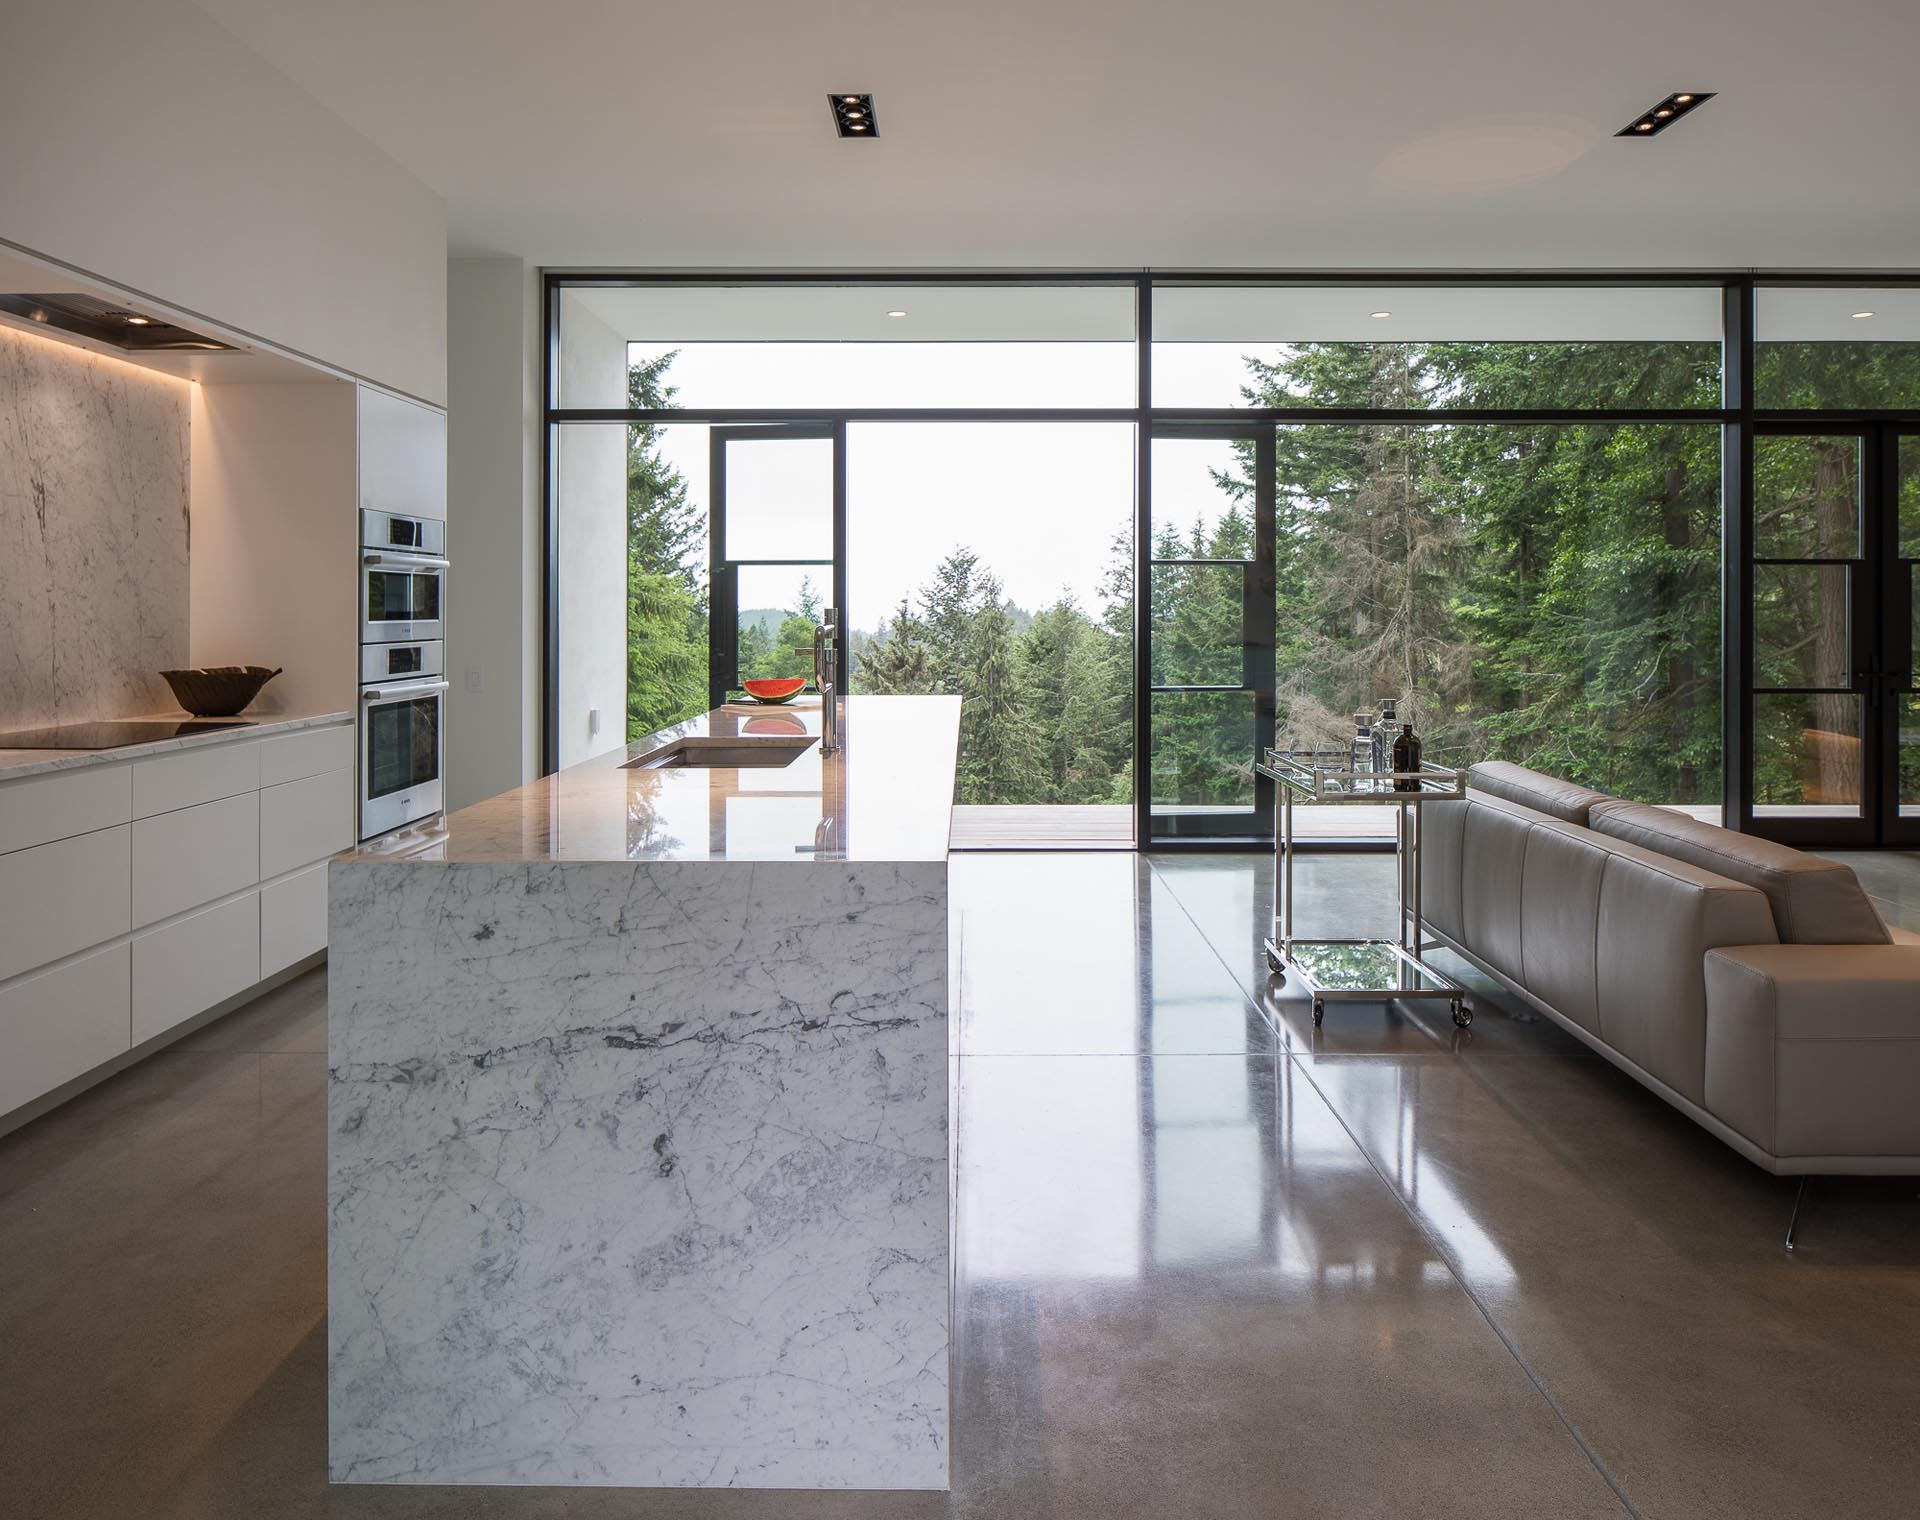 A modern kitchen with minimalist white cabinets, Carrera marble countertops, and gray concrete flooring.